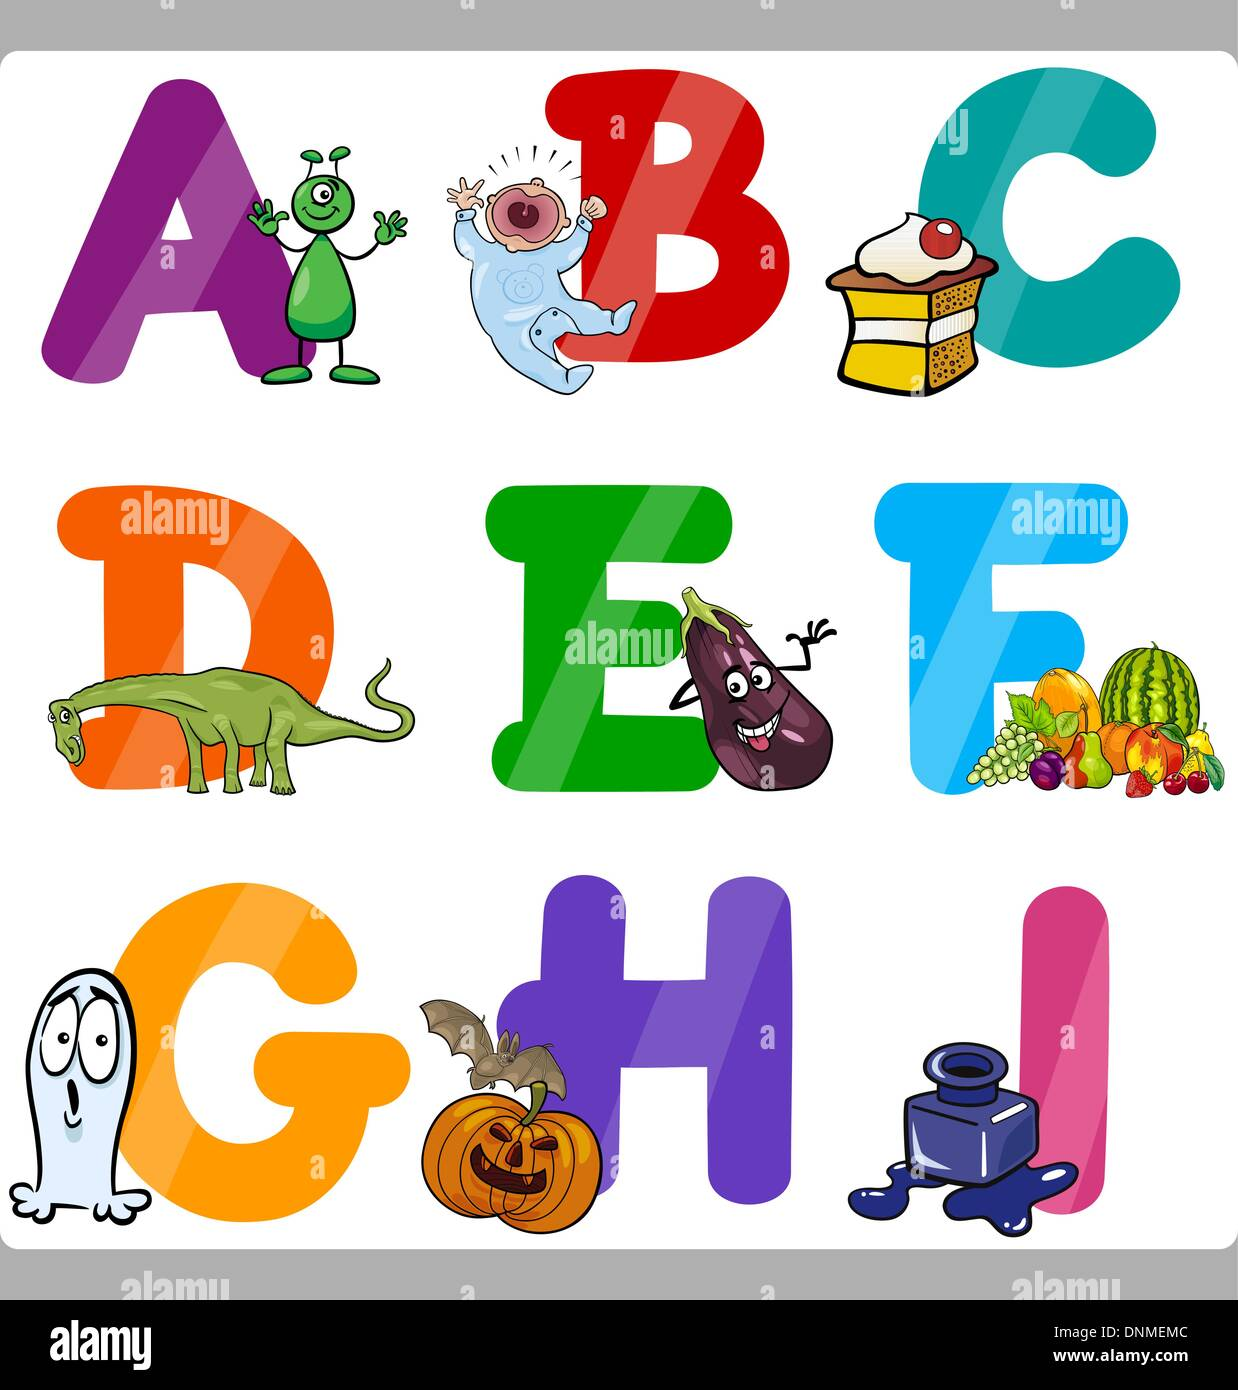 Cartoon Illustration Of Funny Capital Letters Alphabet With Objects For Language And Vocabulary Education For Children